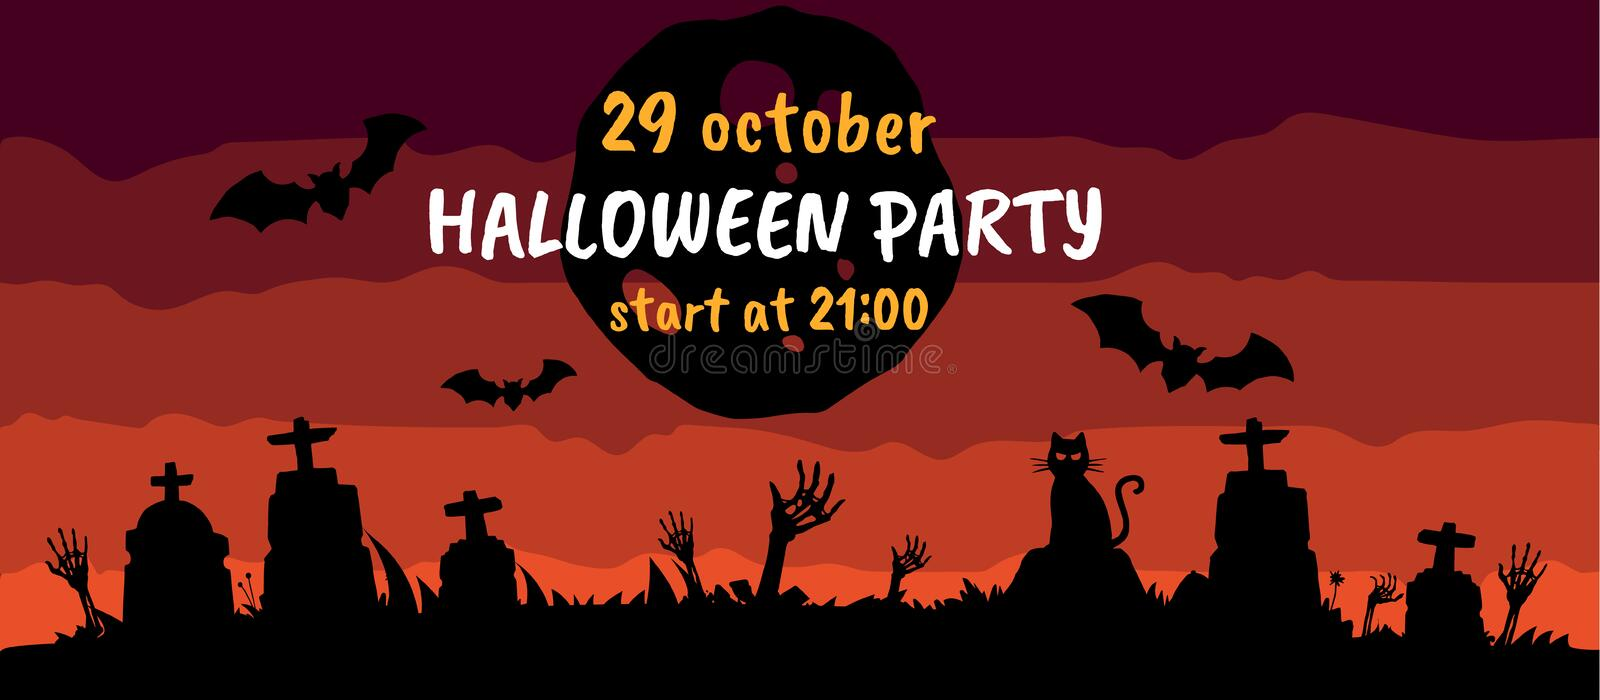 Halloween party ticket, banner, card or poster template design vector illustration